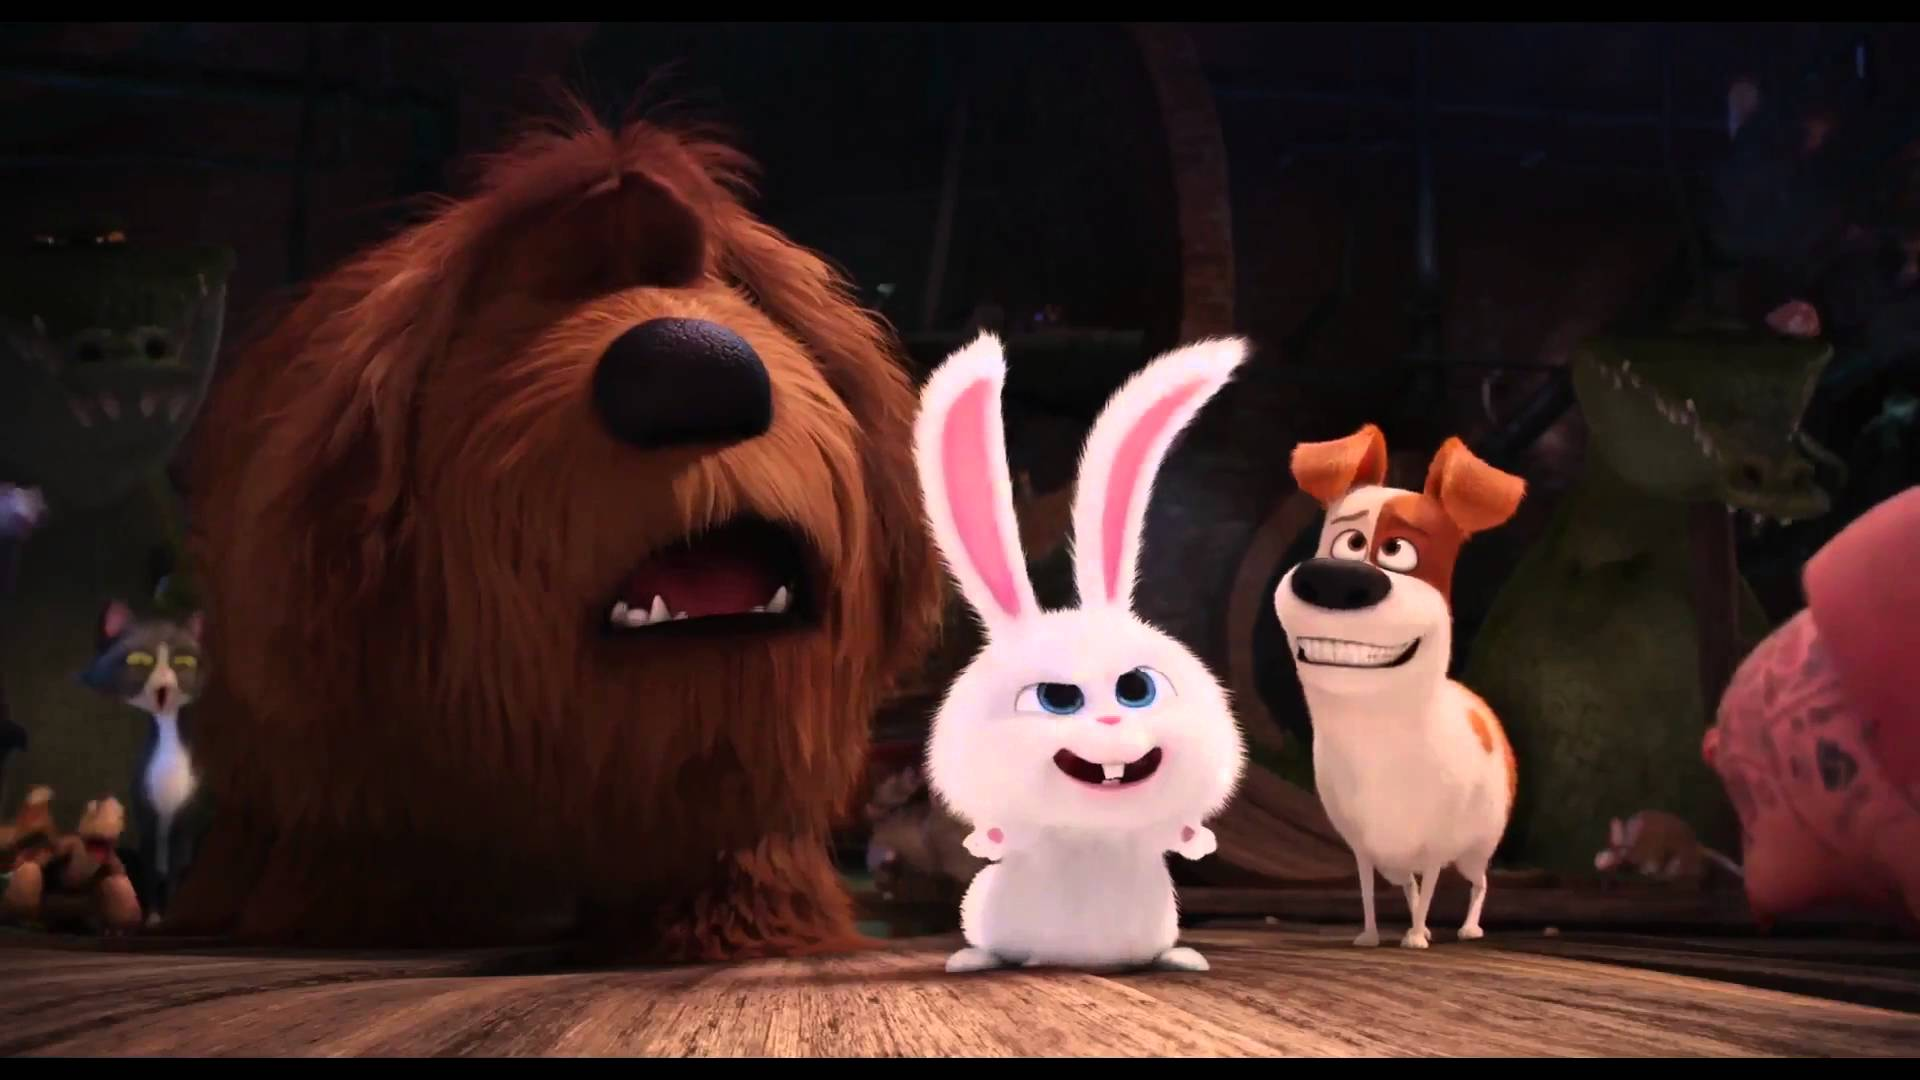 the secret life of pets jediyuth